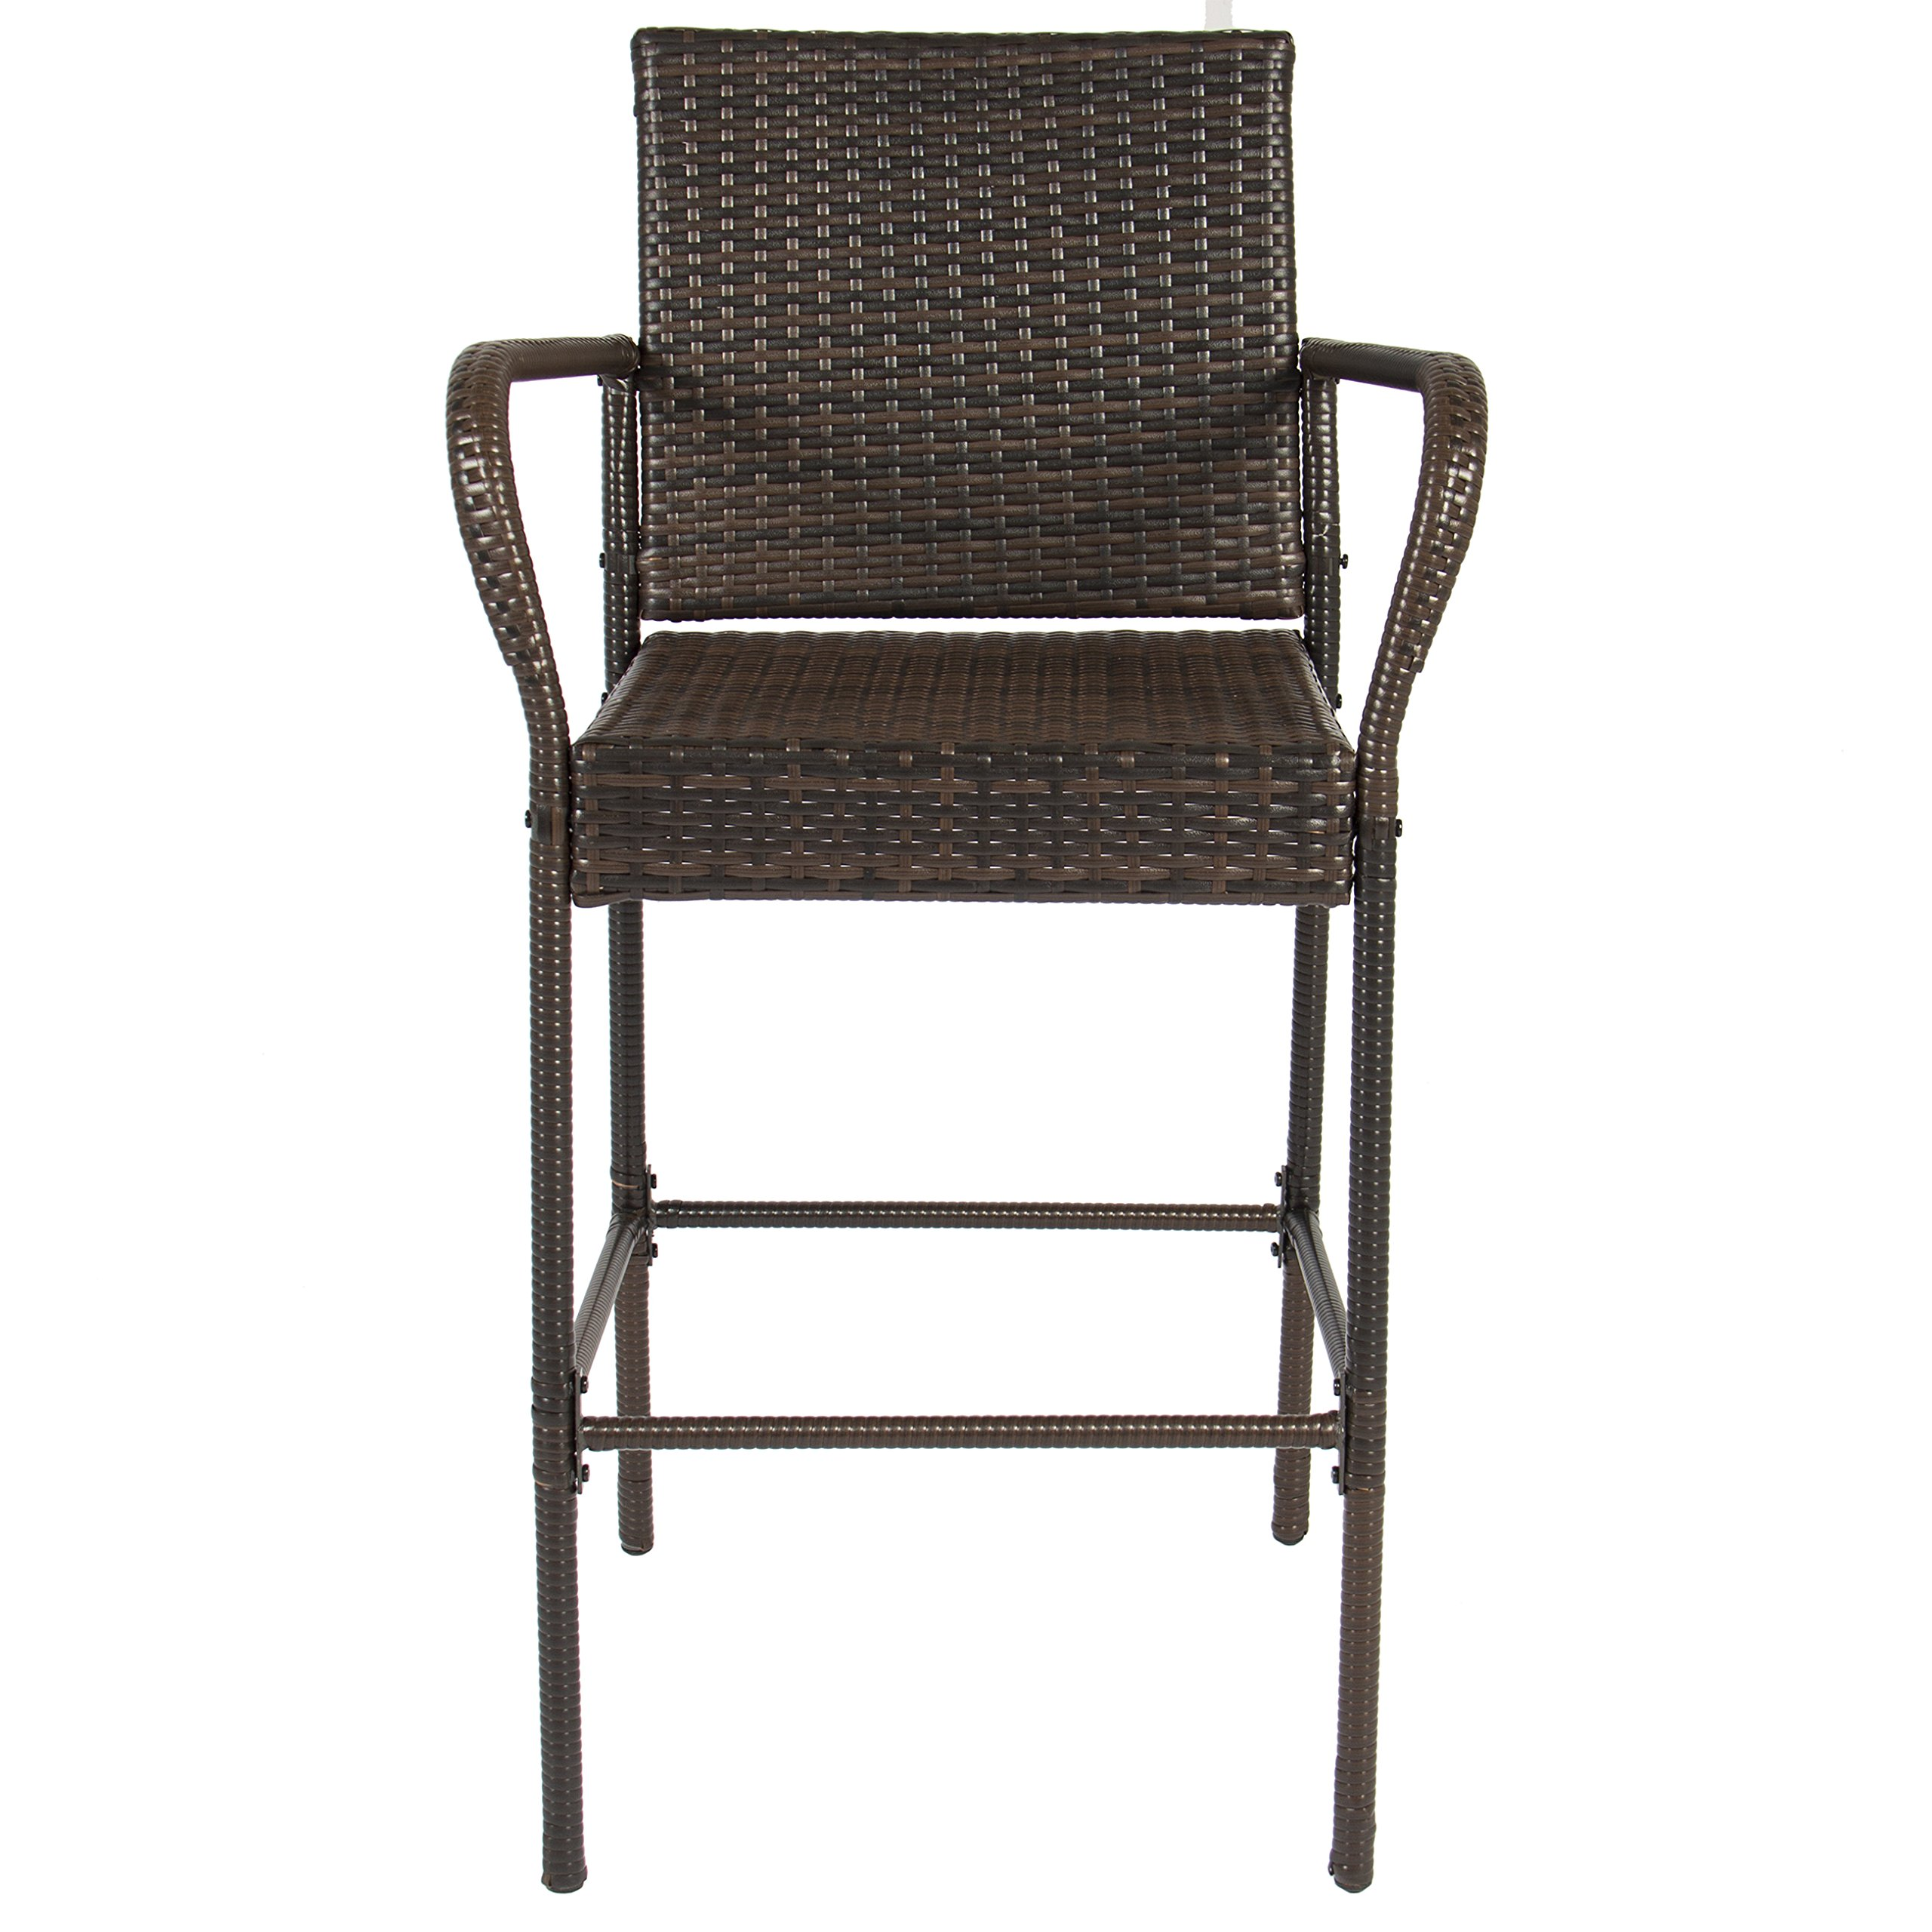 Best Choice Products Set of 2 Outdoor Brown Wicker Barstool Outdoor Patio Furniture Bar Stool by Best Choice Products (Image #4)